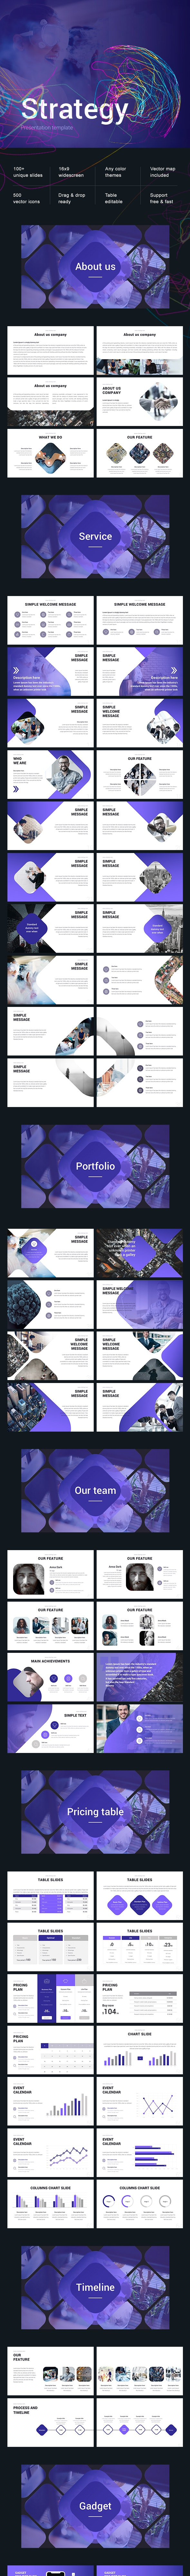 Business Strategy Powerpoint - Business PowerPoint Templates